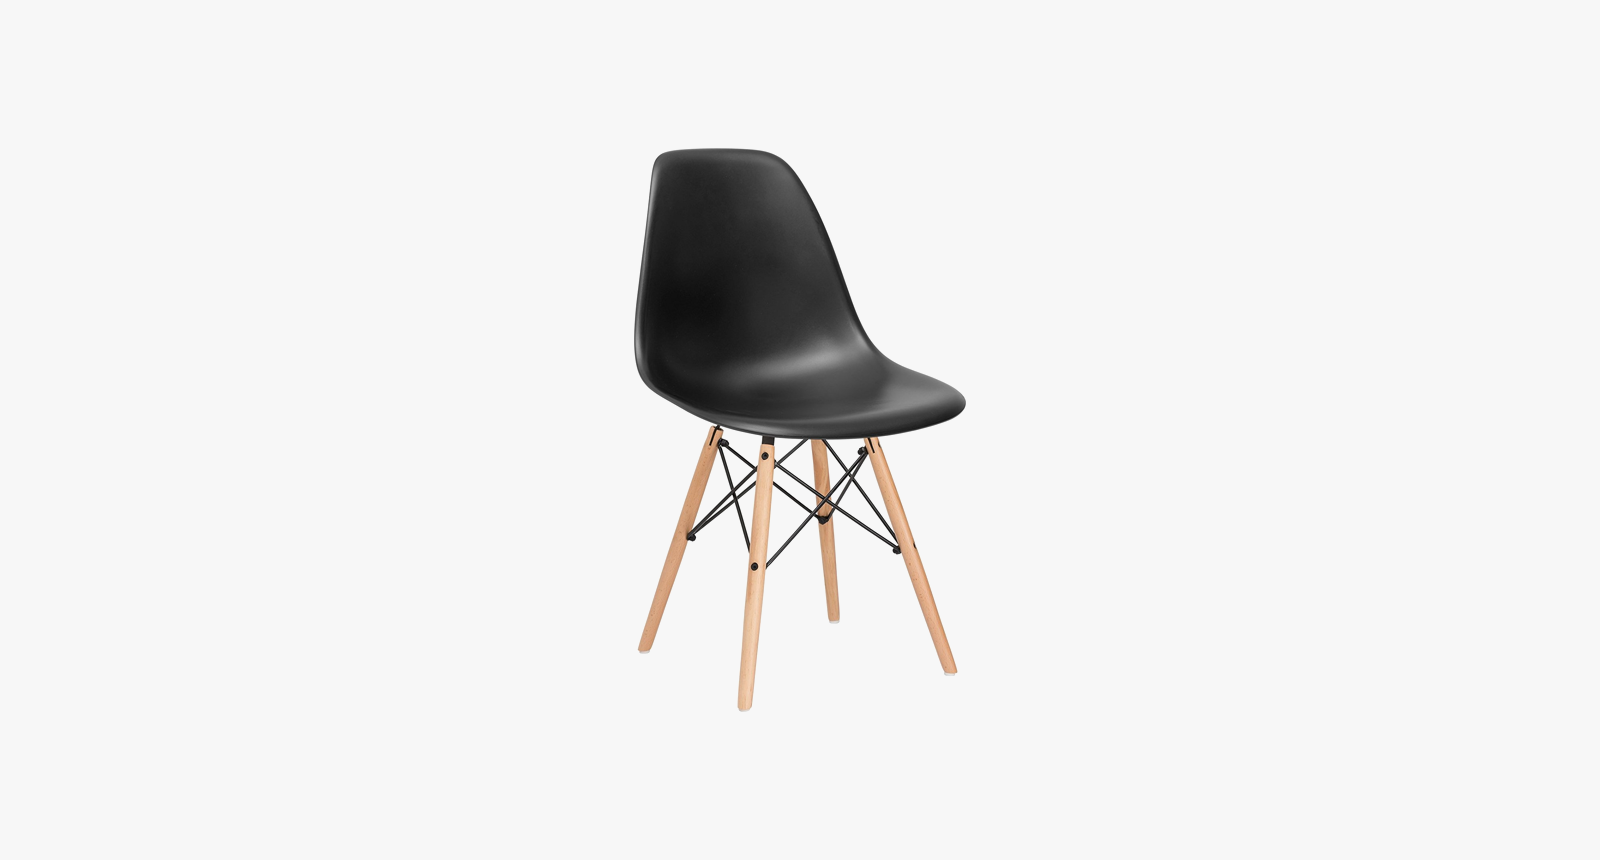 Vortex Dining Chair with stylish wooden legs by Poly+Bark